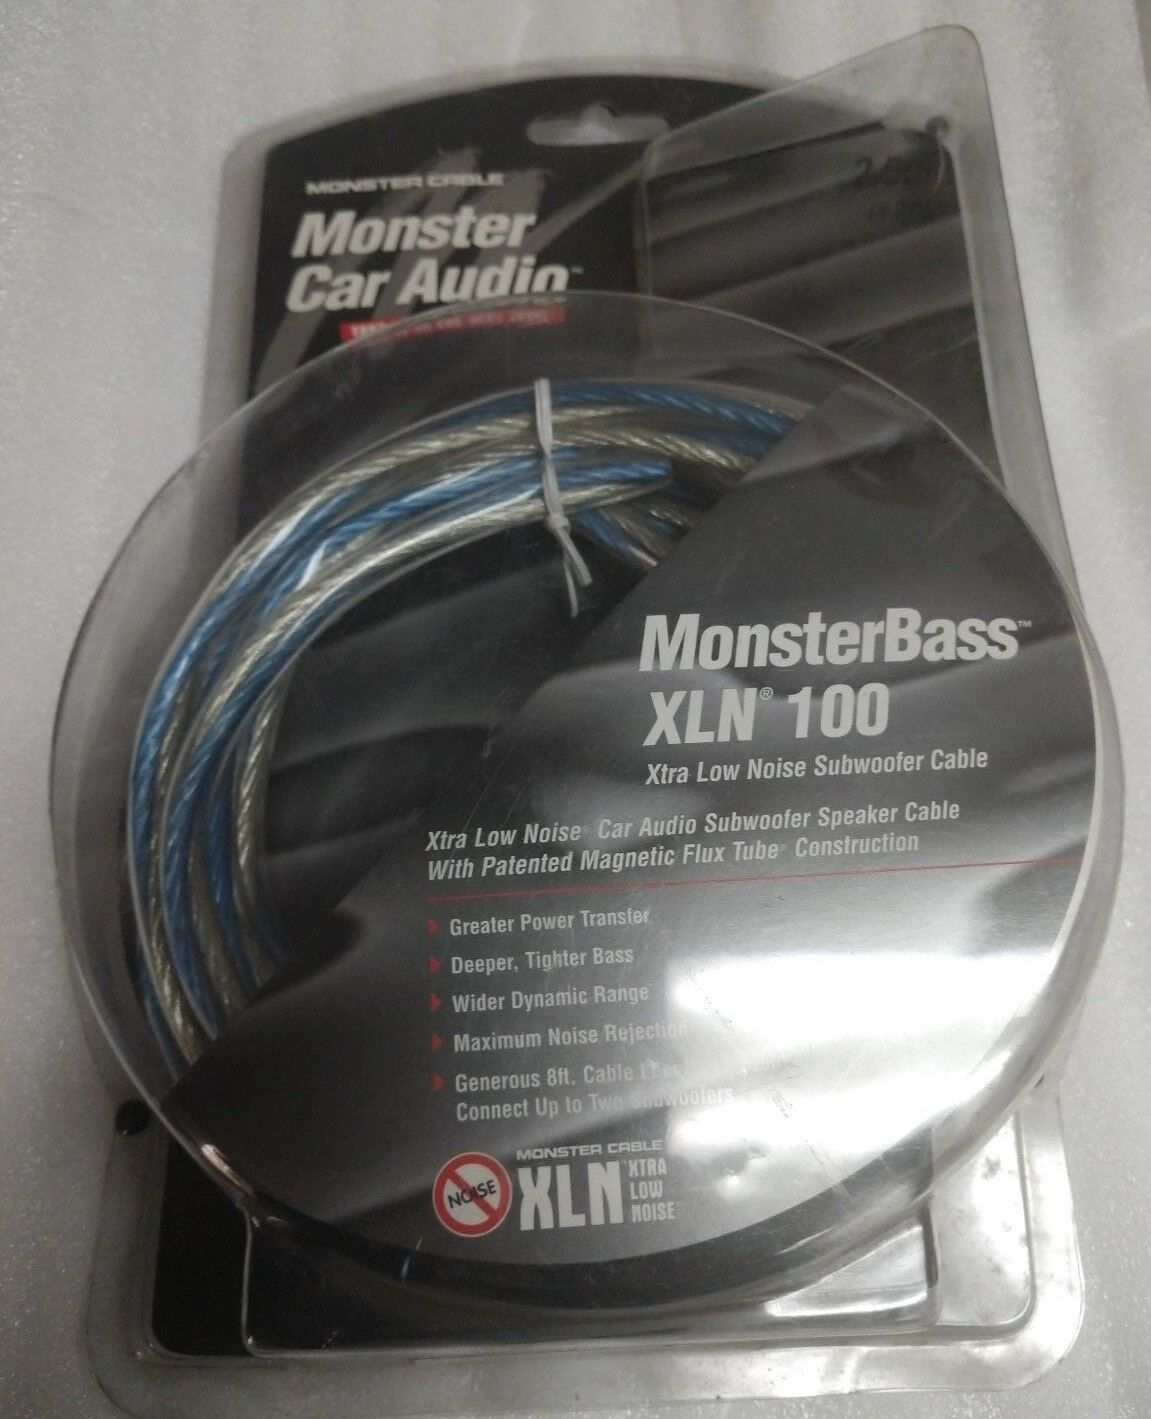 [2] Monster Car Audio MonsterBass XLN 100 8 ft Xtra Low Noise Subwoofer Cable